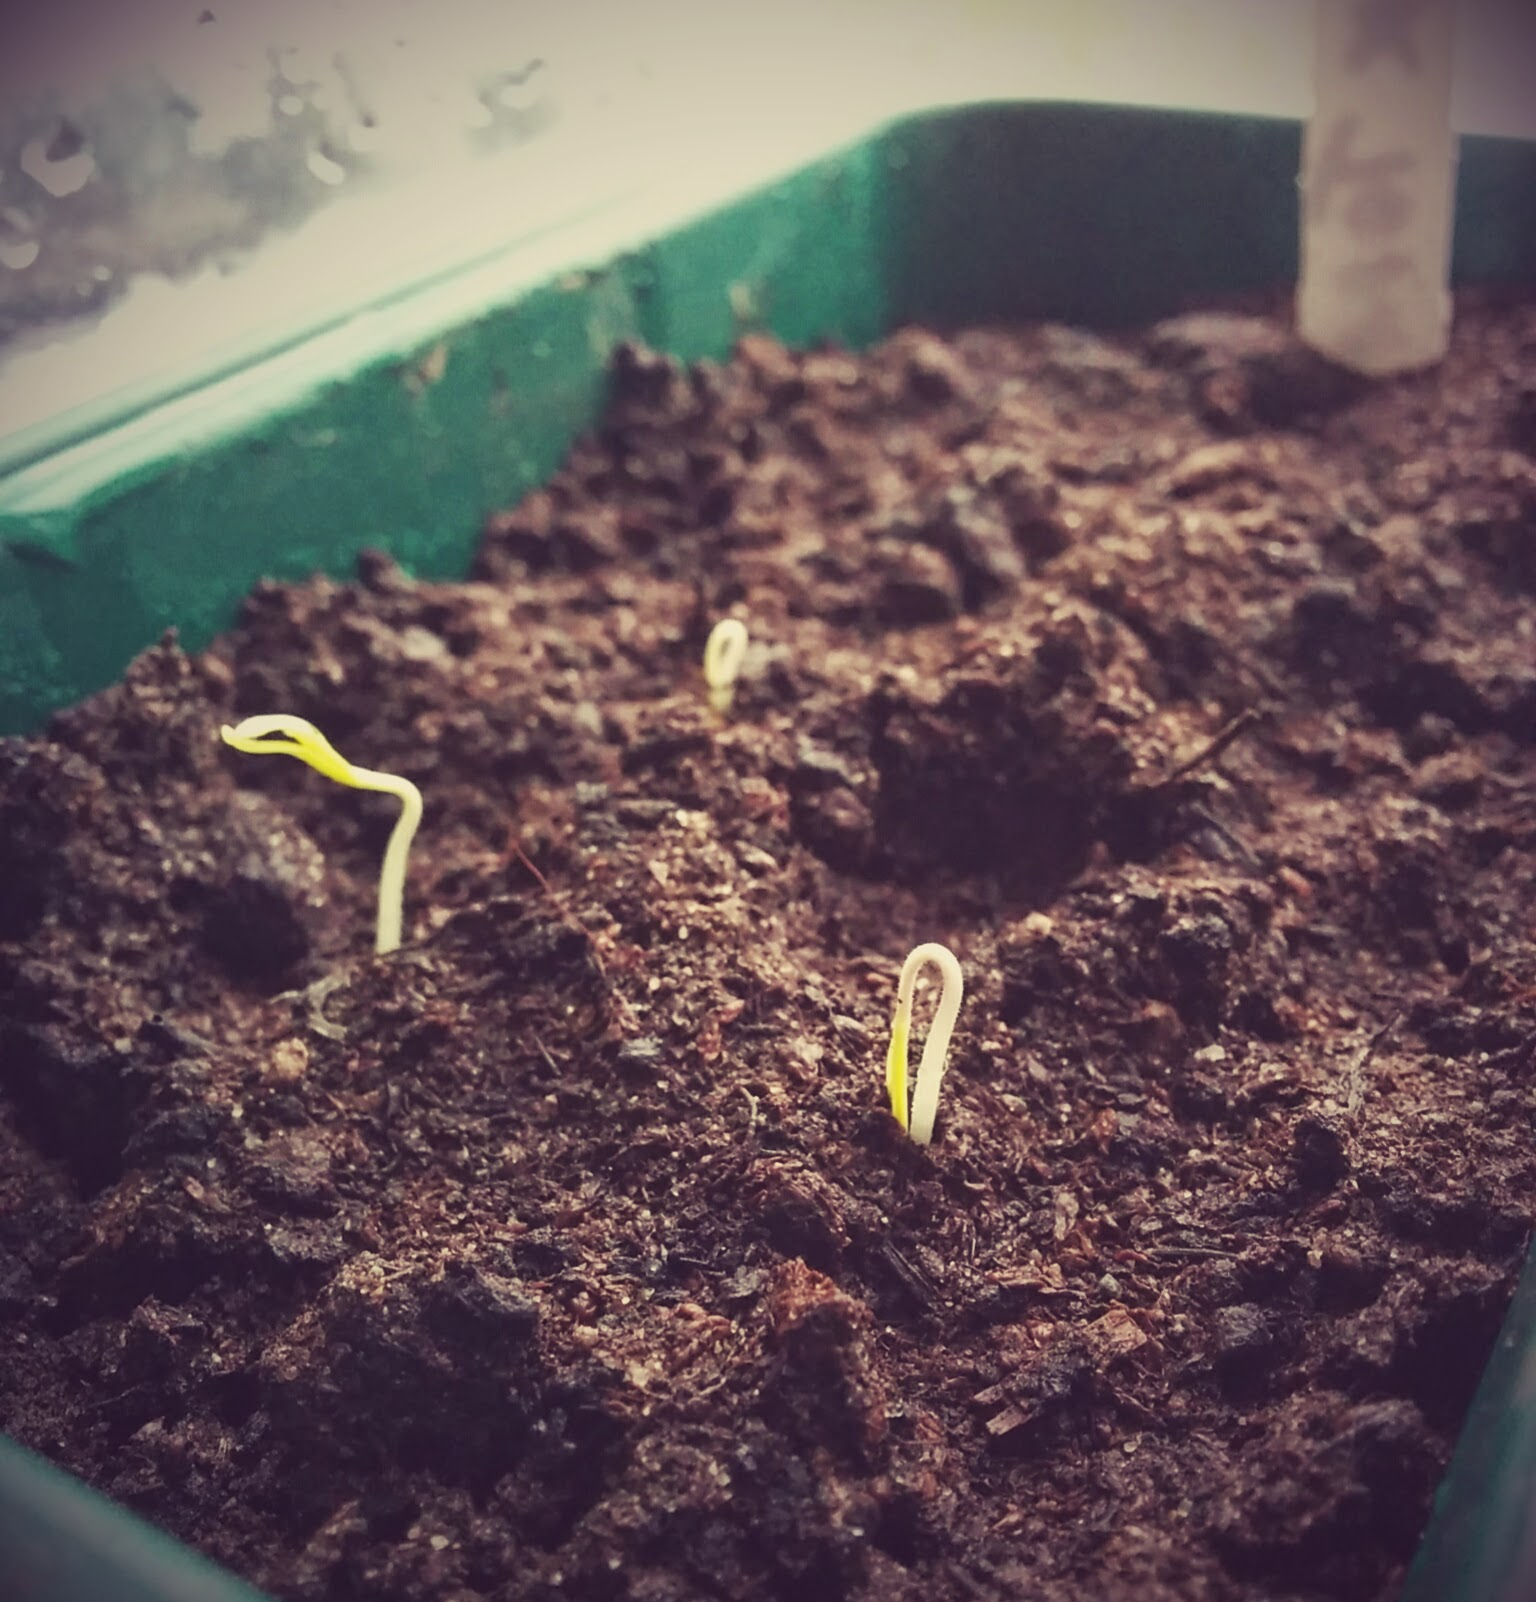 Germinating tomato seeds